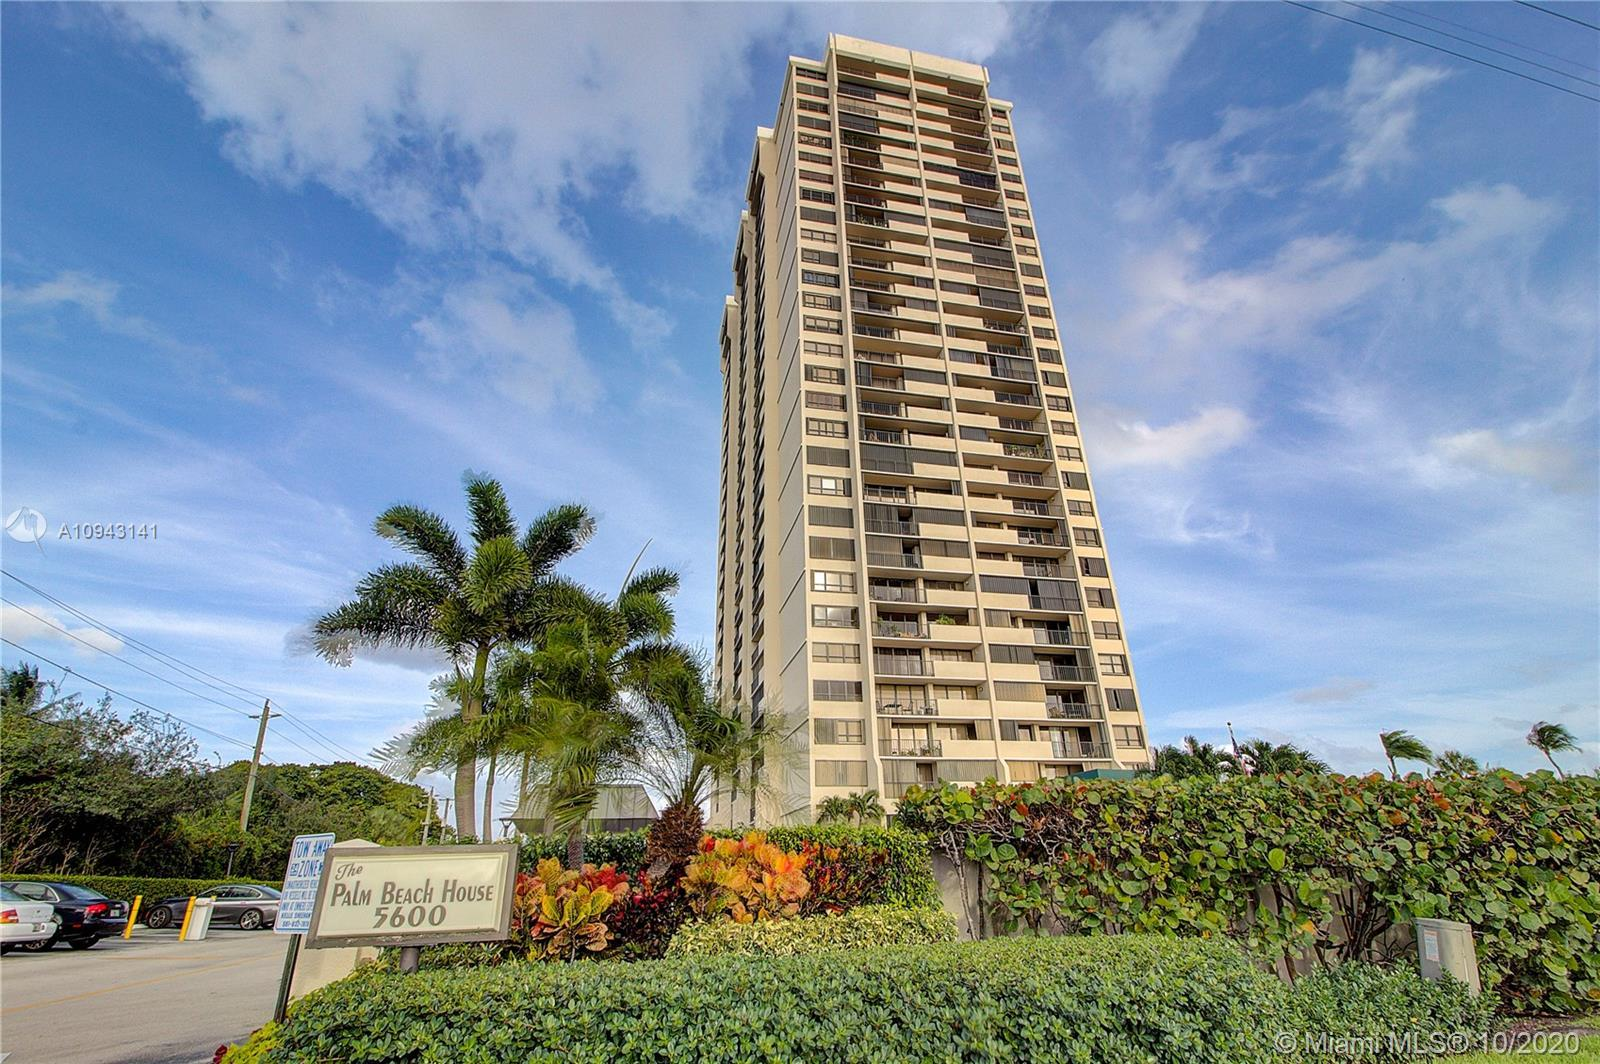 The location of this particular unit is just perfect, right in the center of the building. The views